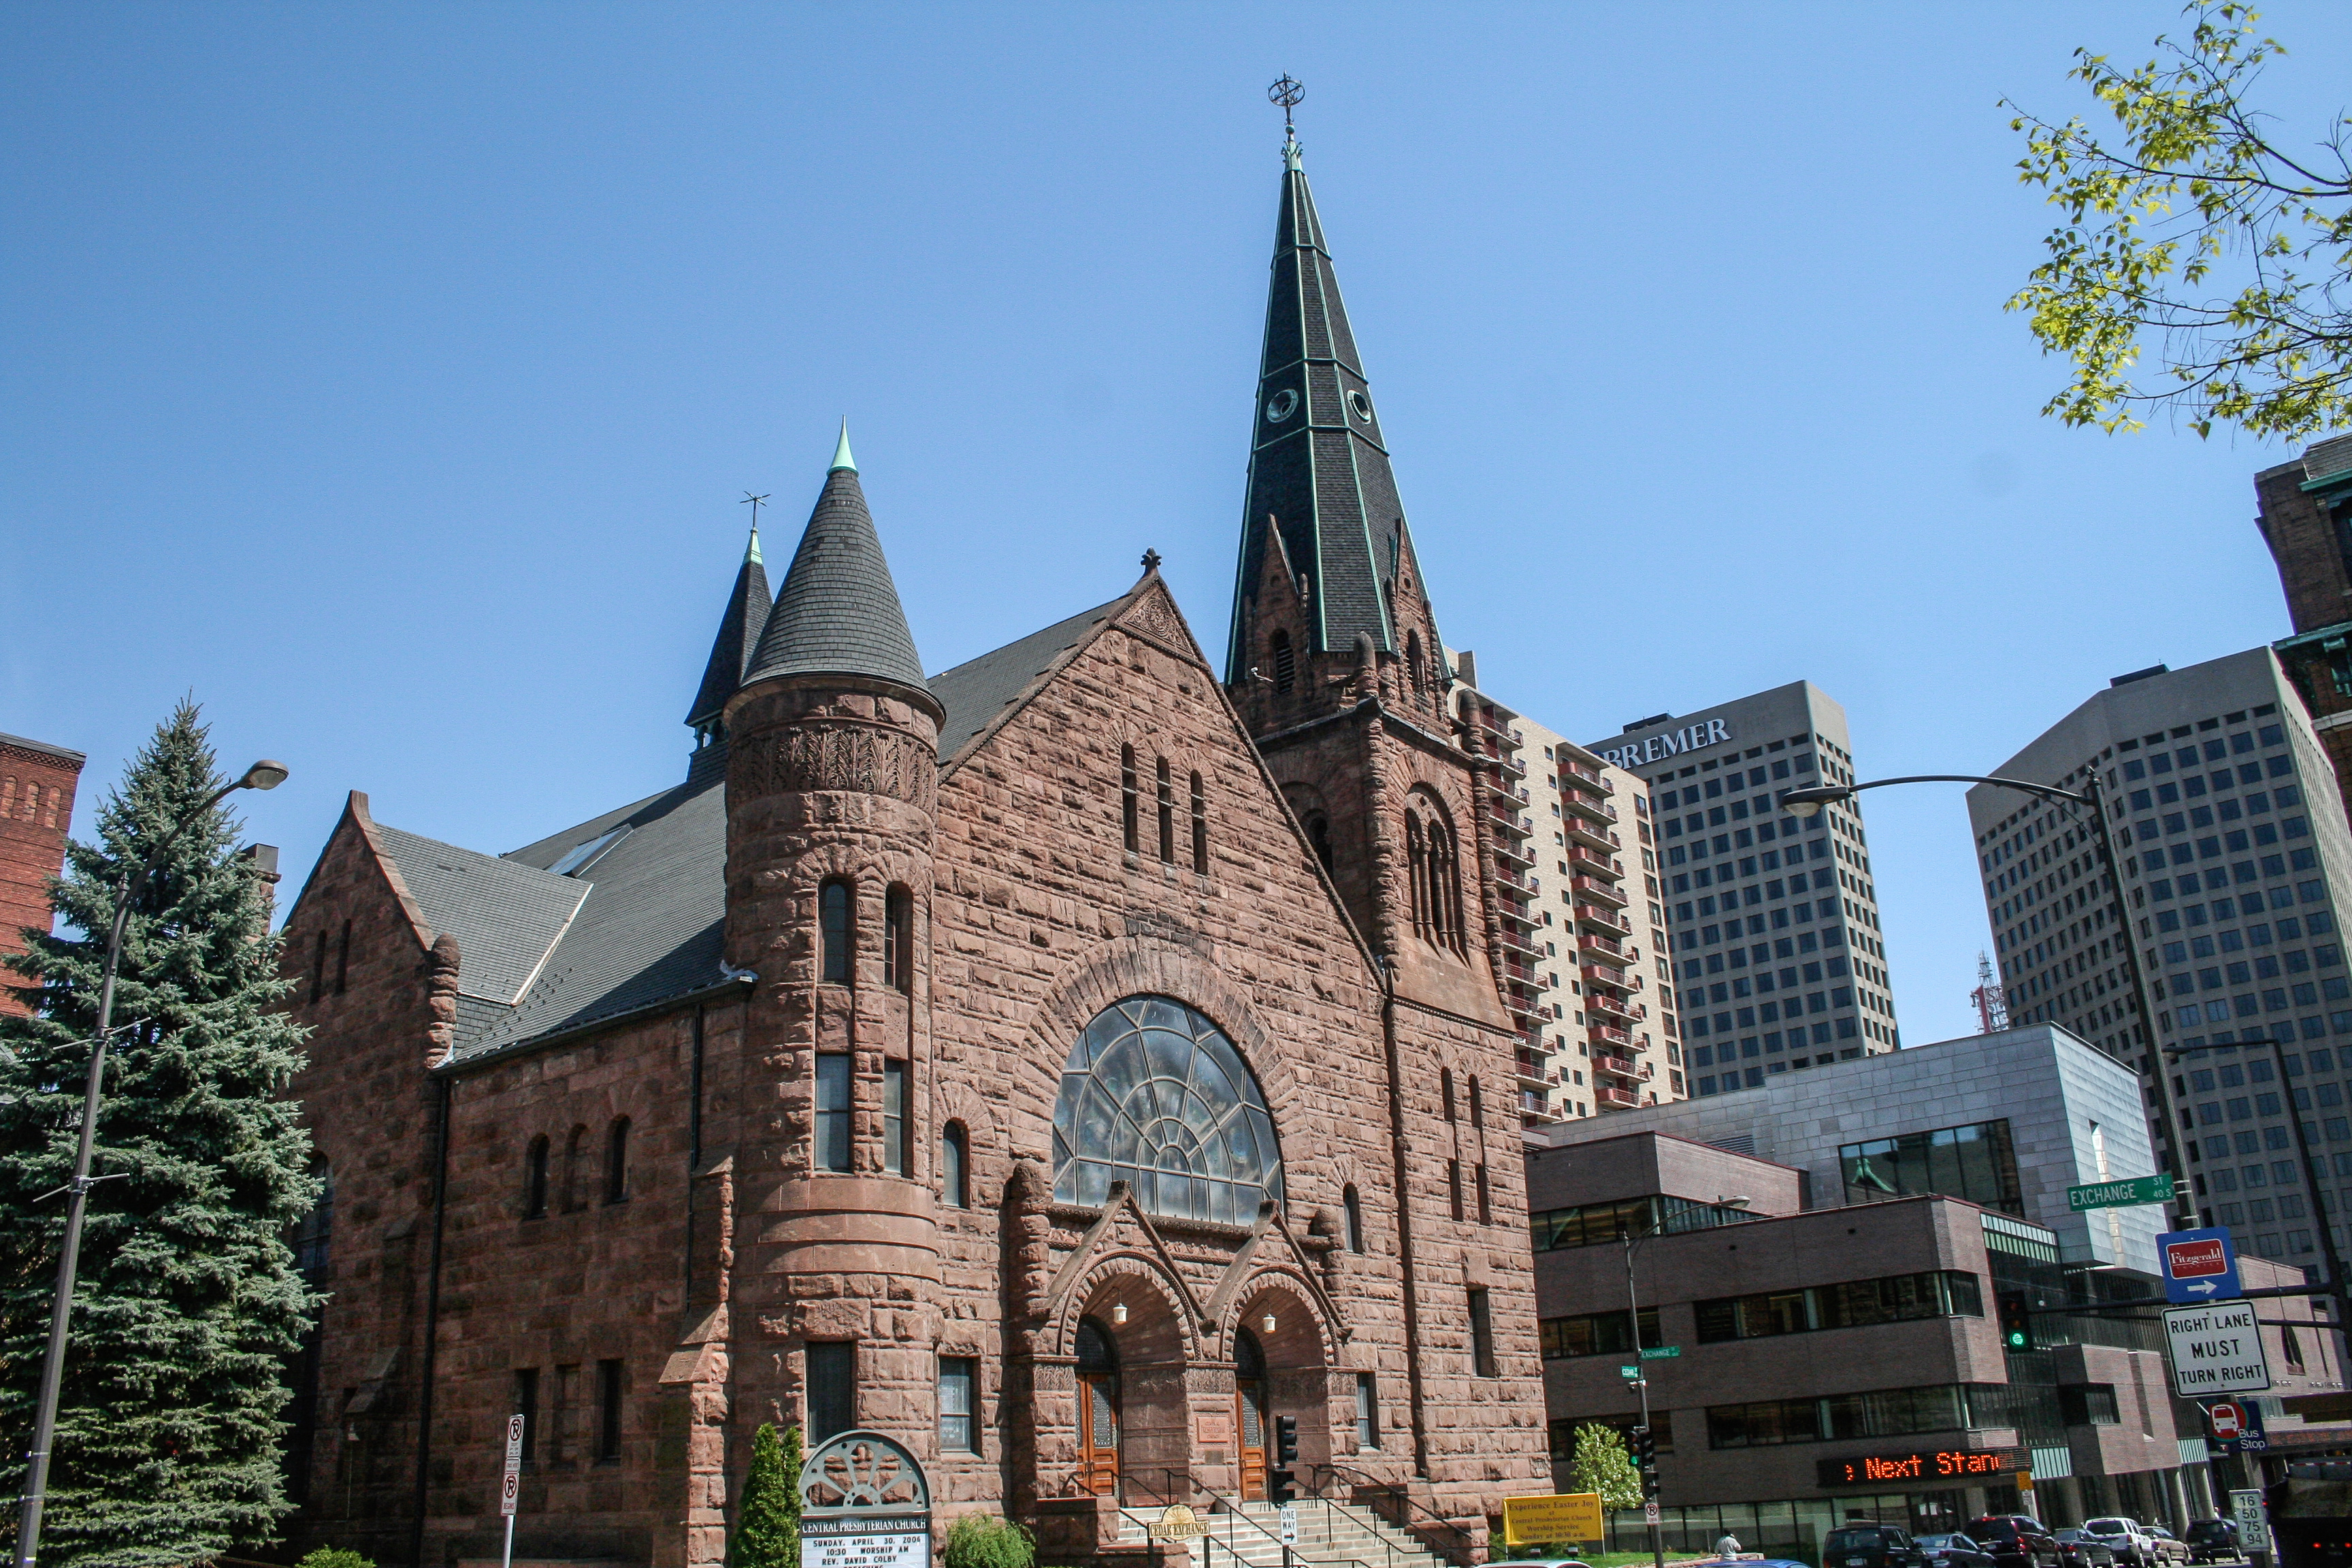 Central Presbyterian Church was built in 1889 by Warren Hayes and added to the National Register of Historic Places in 1986.